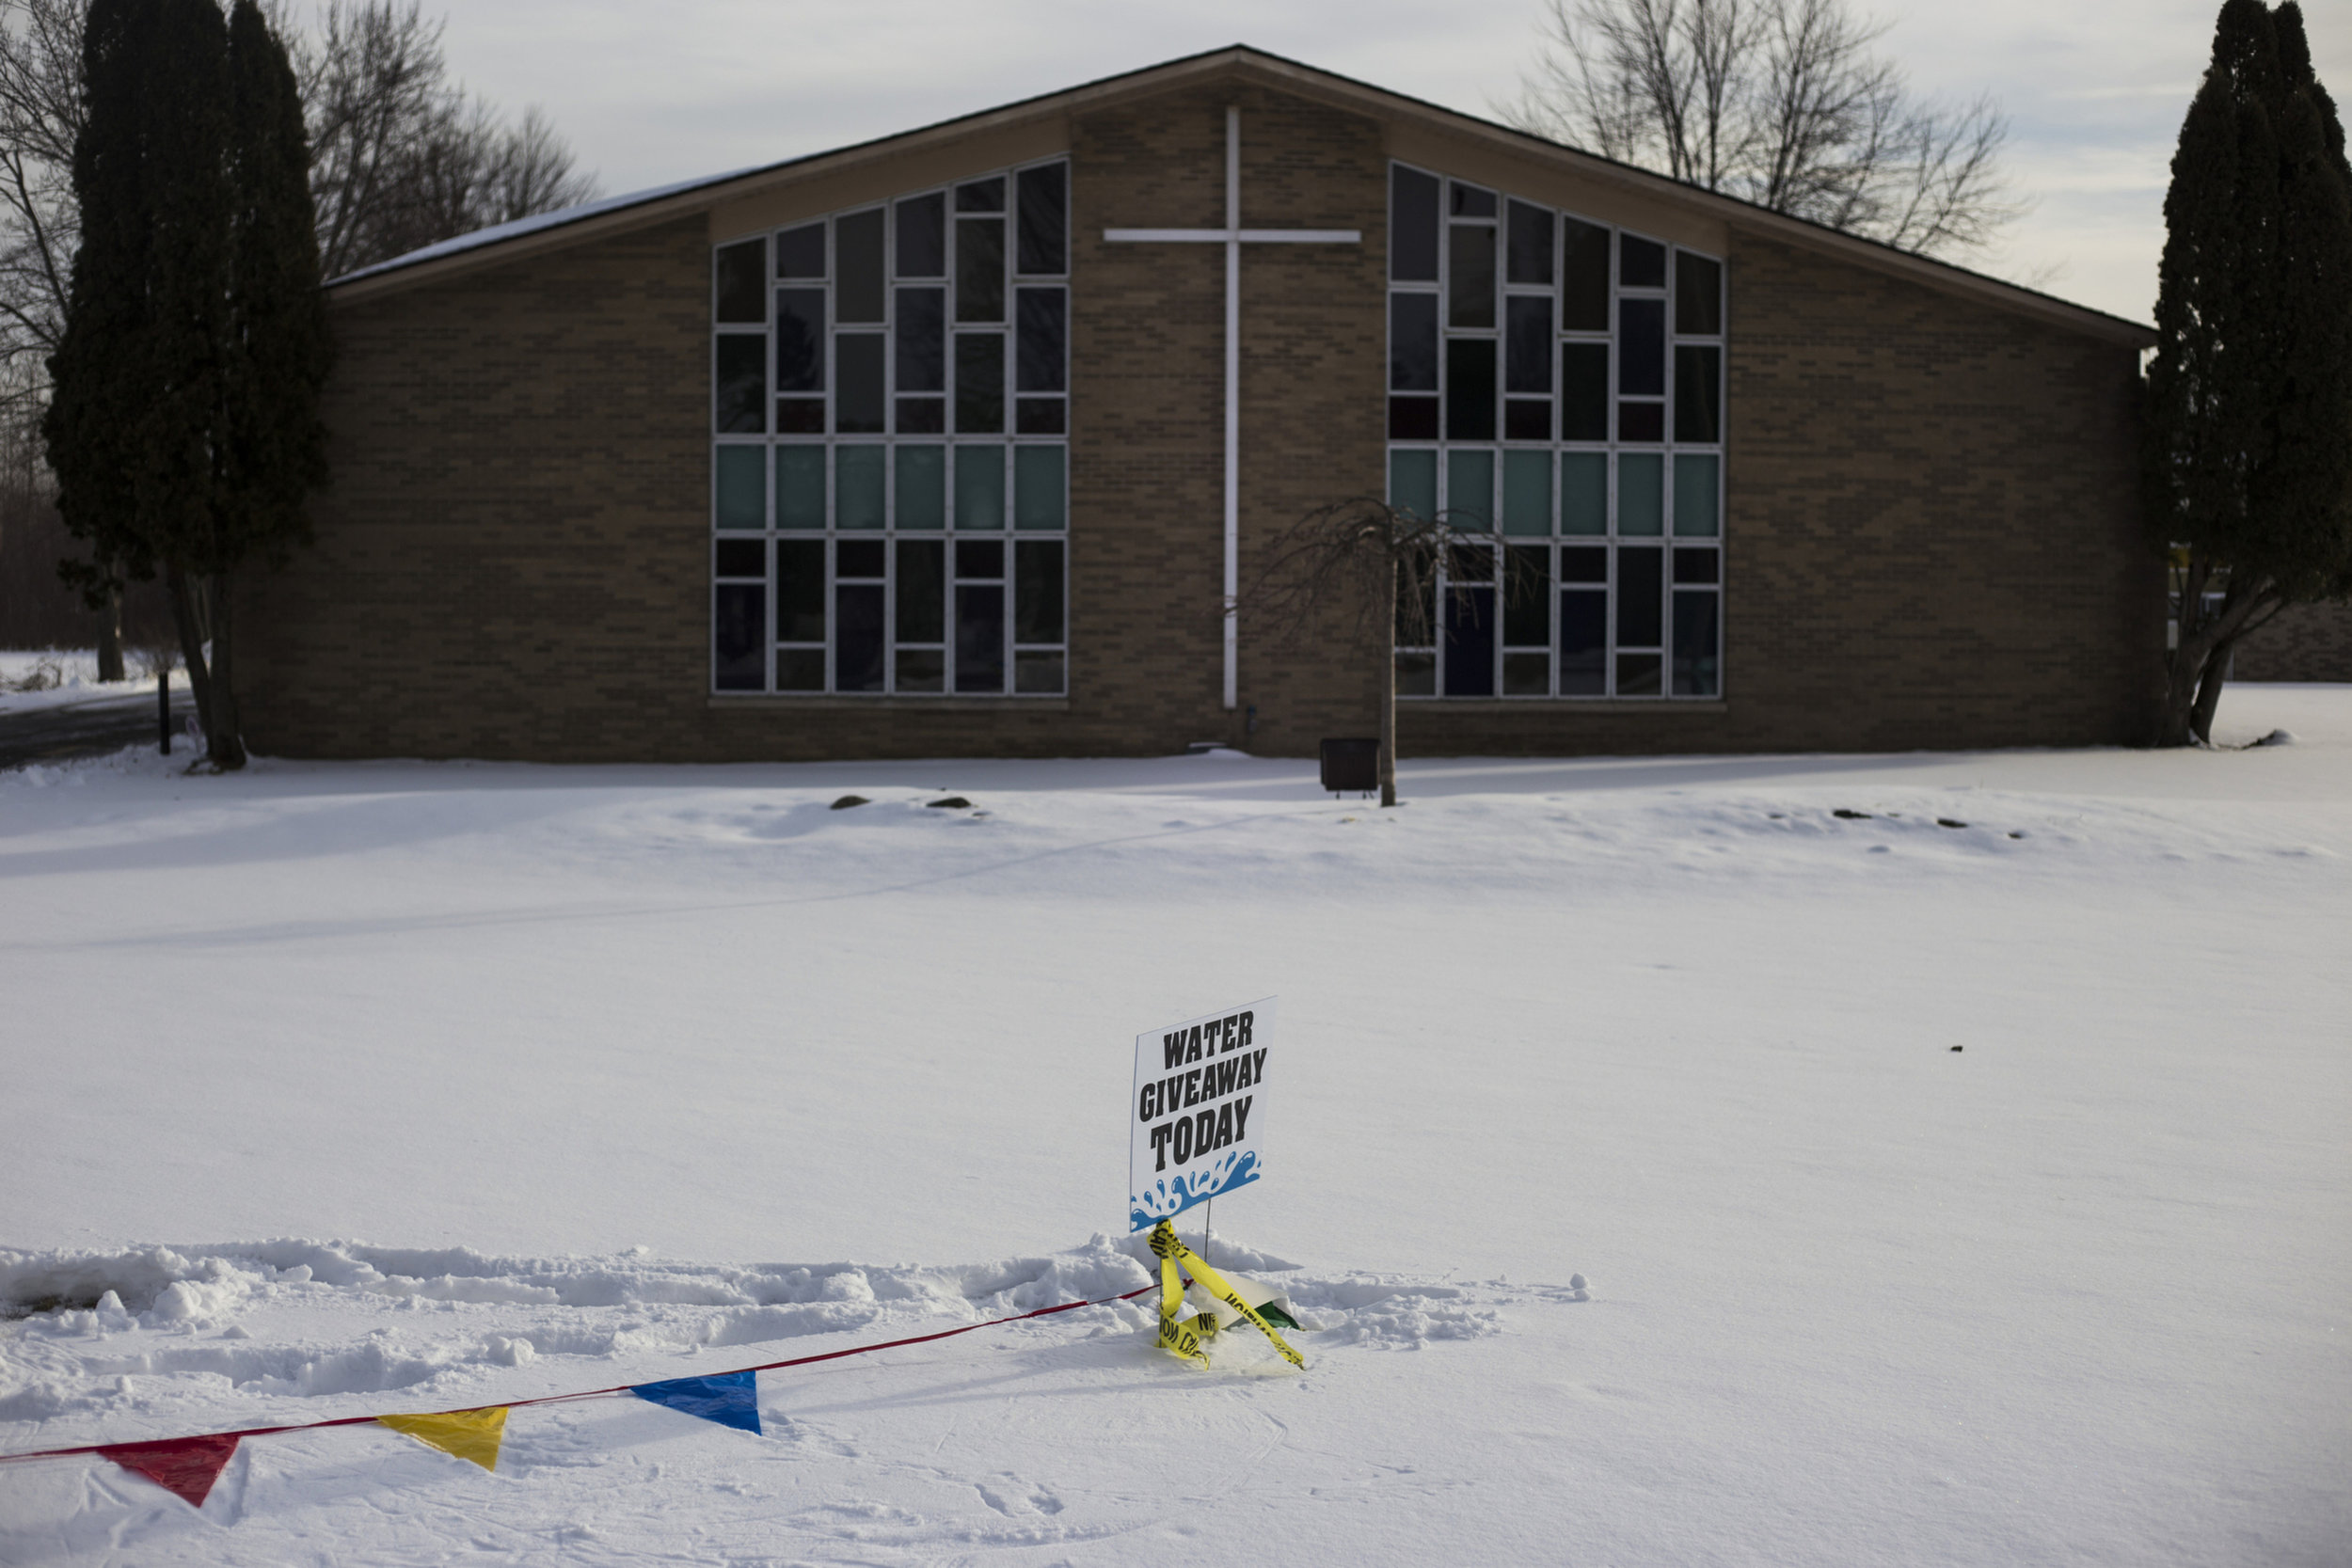 A water donation sign sits in the snow in front of the Jackson Memorial Temple Church in Flint, Mich., on February 18, 2016. Since the declaration for a state of emergency in the city in early January, many local churches took on the responsibility of distributing water to Flint residents.